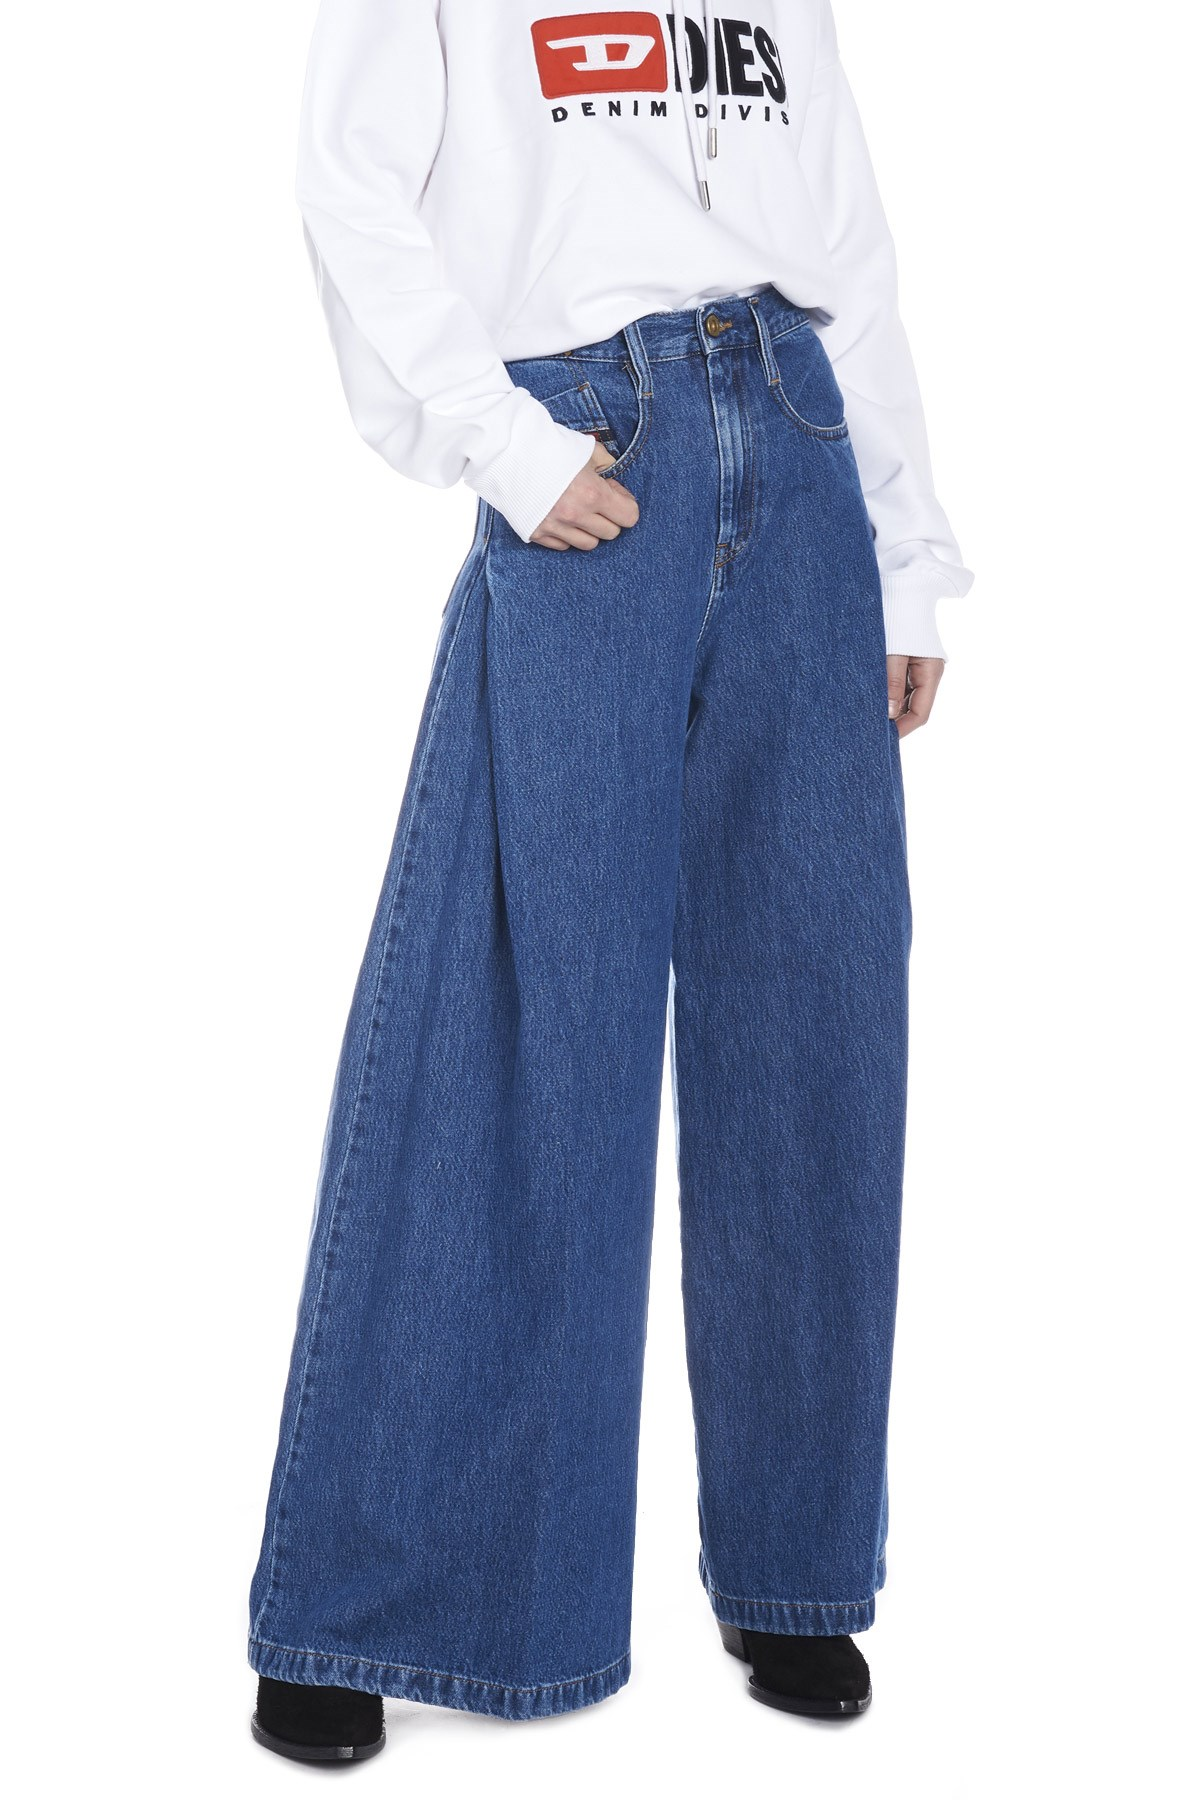 7273f17b diesel 'D-izzier' jeans available on julian-fashion.com - 61110